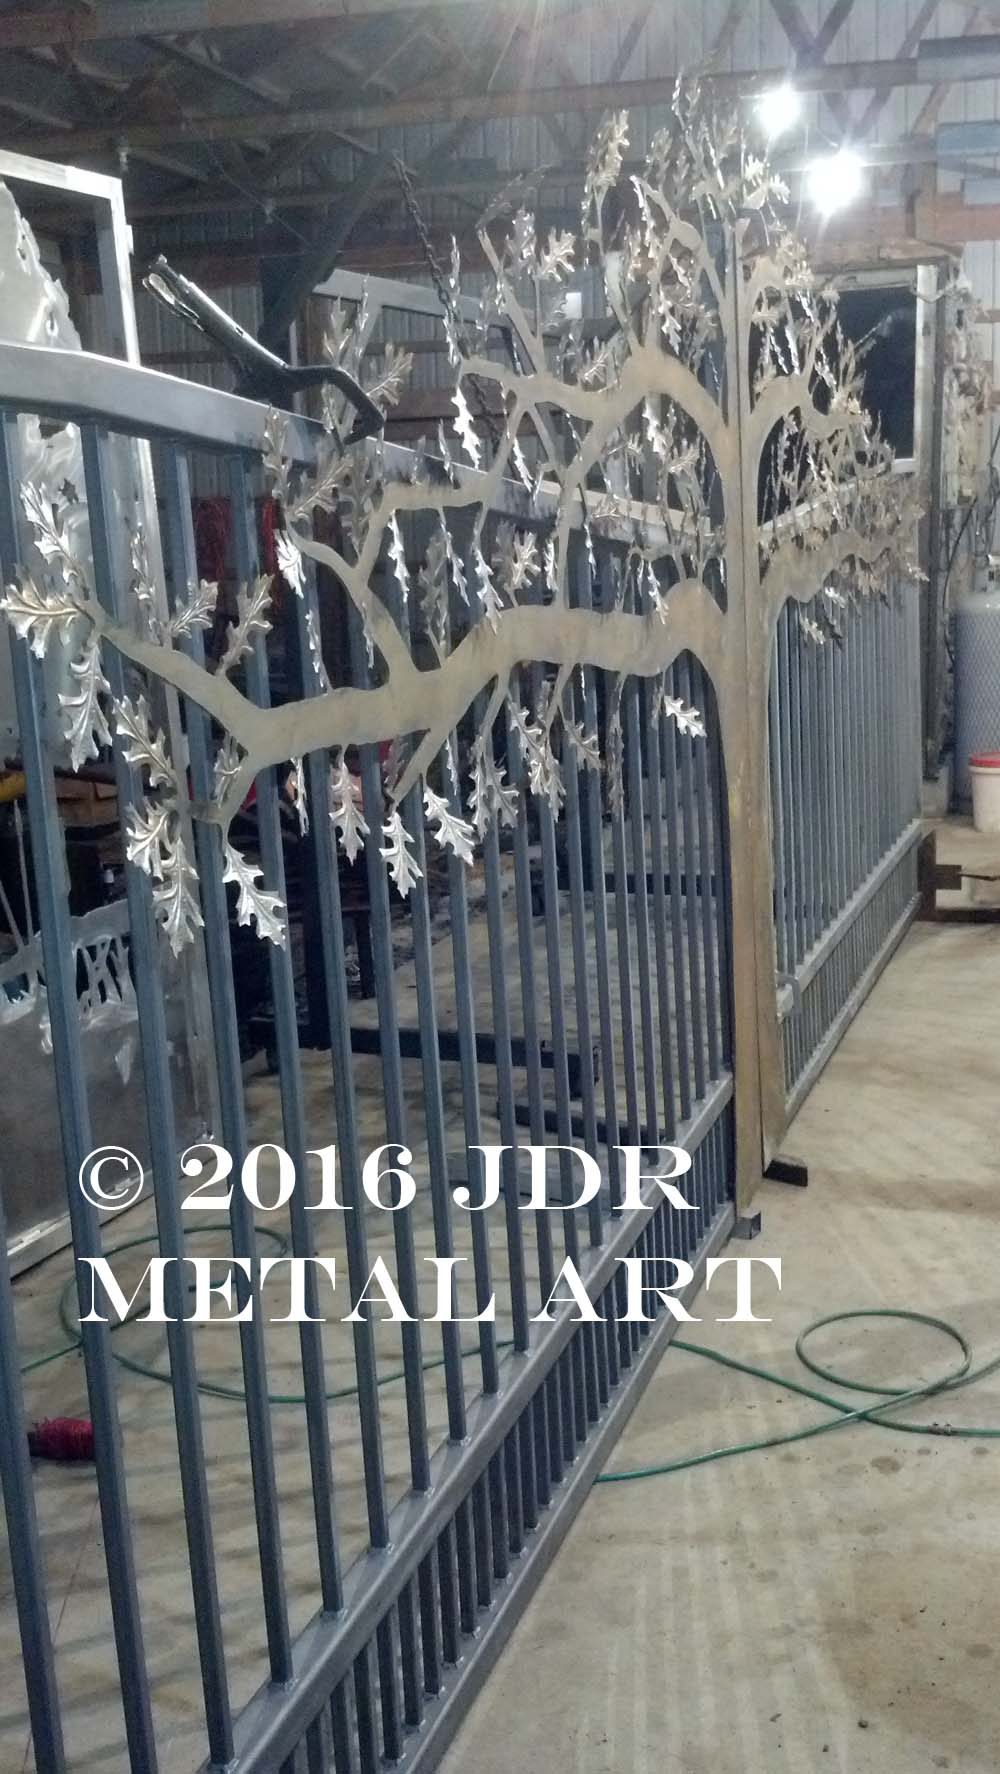 Custom Tree Driveway Gate made by JDR Metal Art.